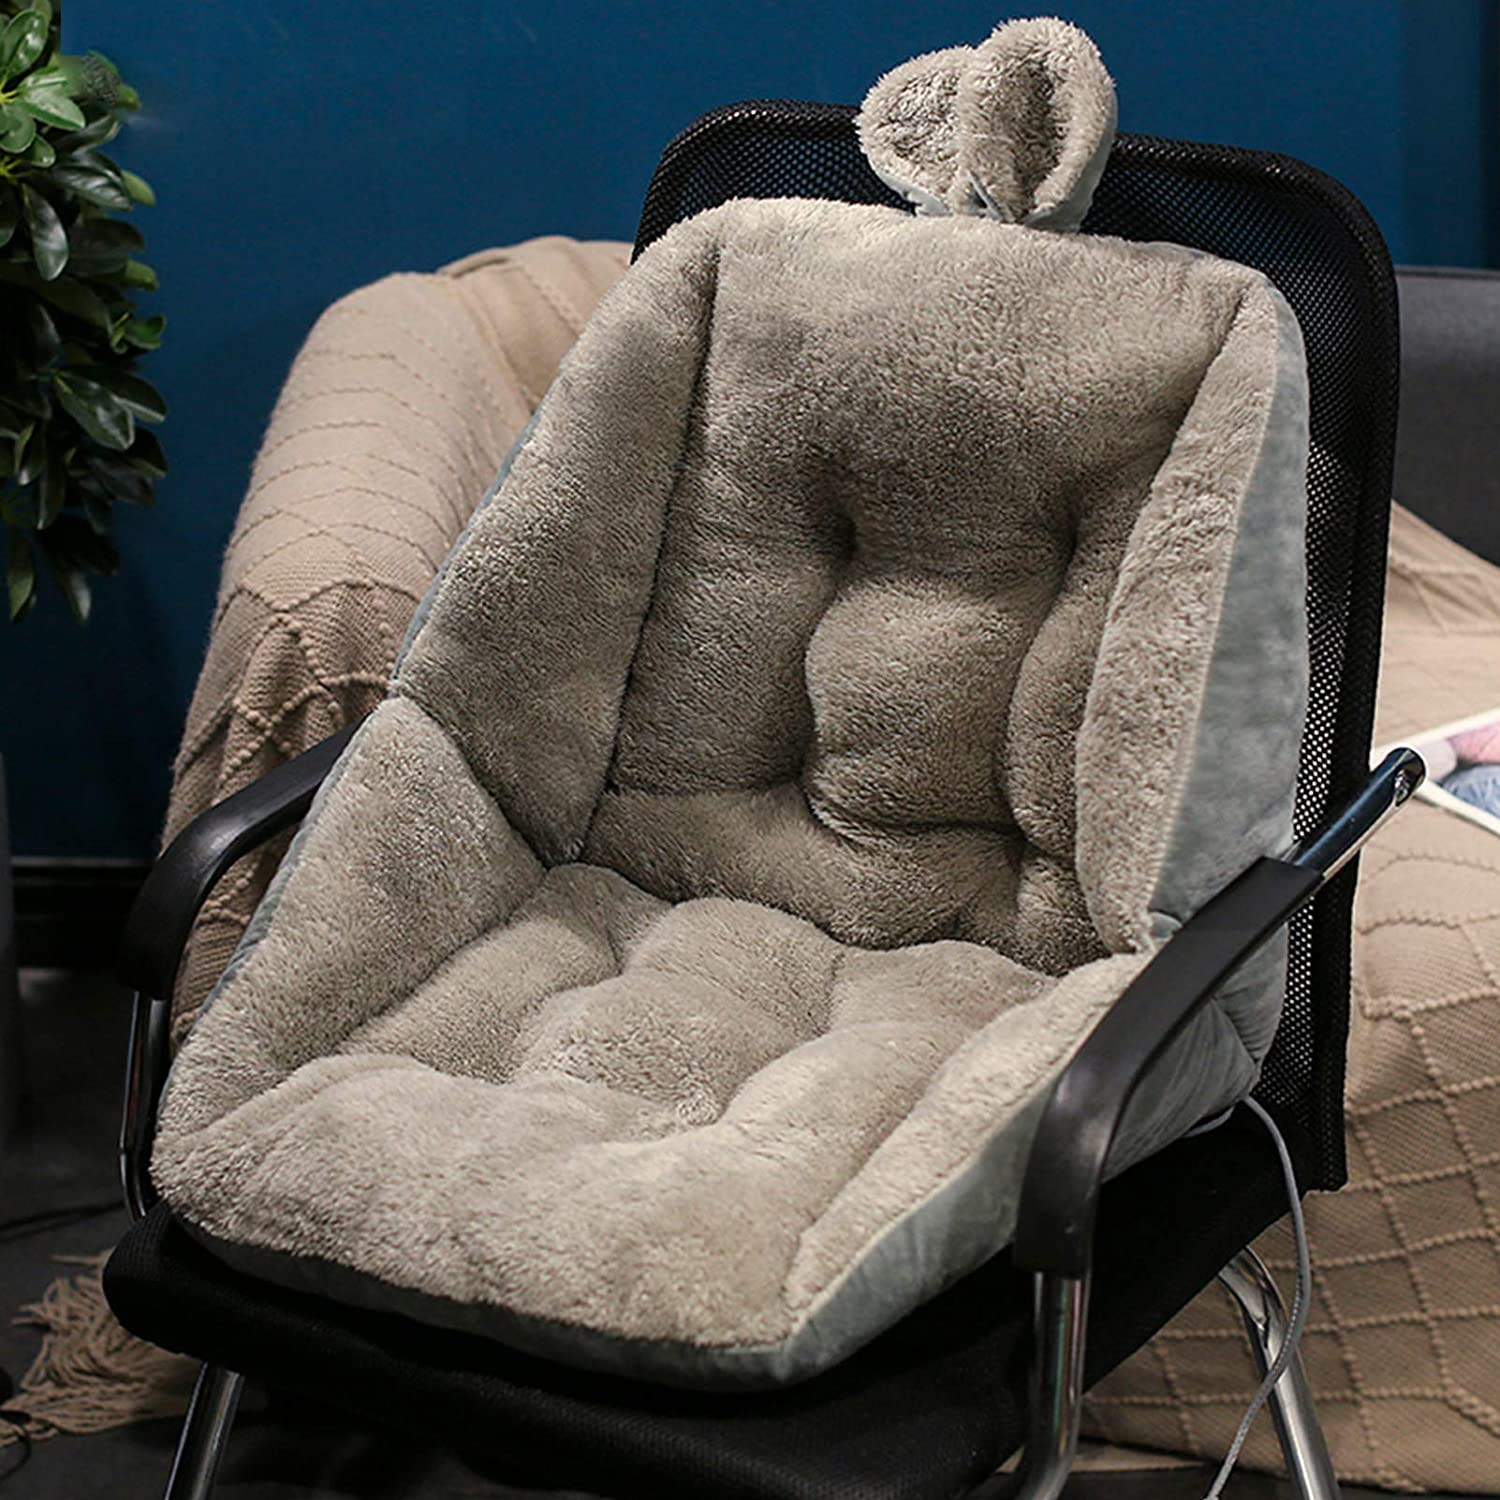 Thickened Rocker Cushion Car High-Back Indoor Popular brand in the Columbus Mall world